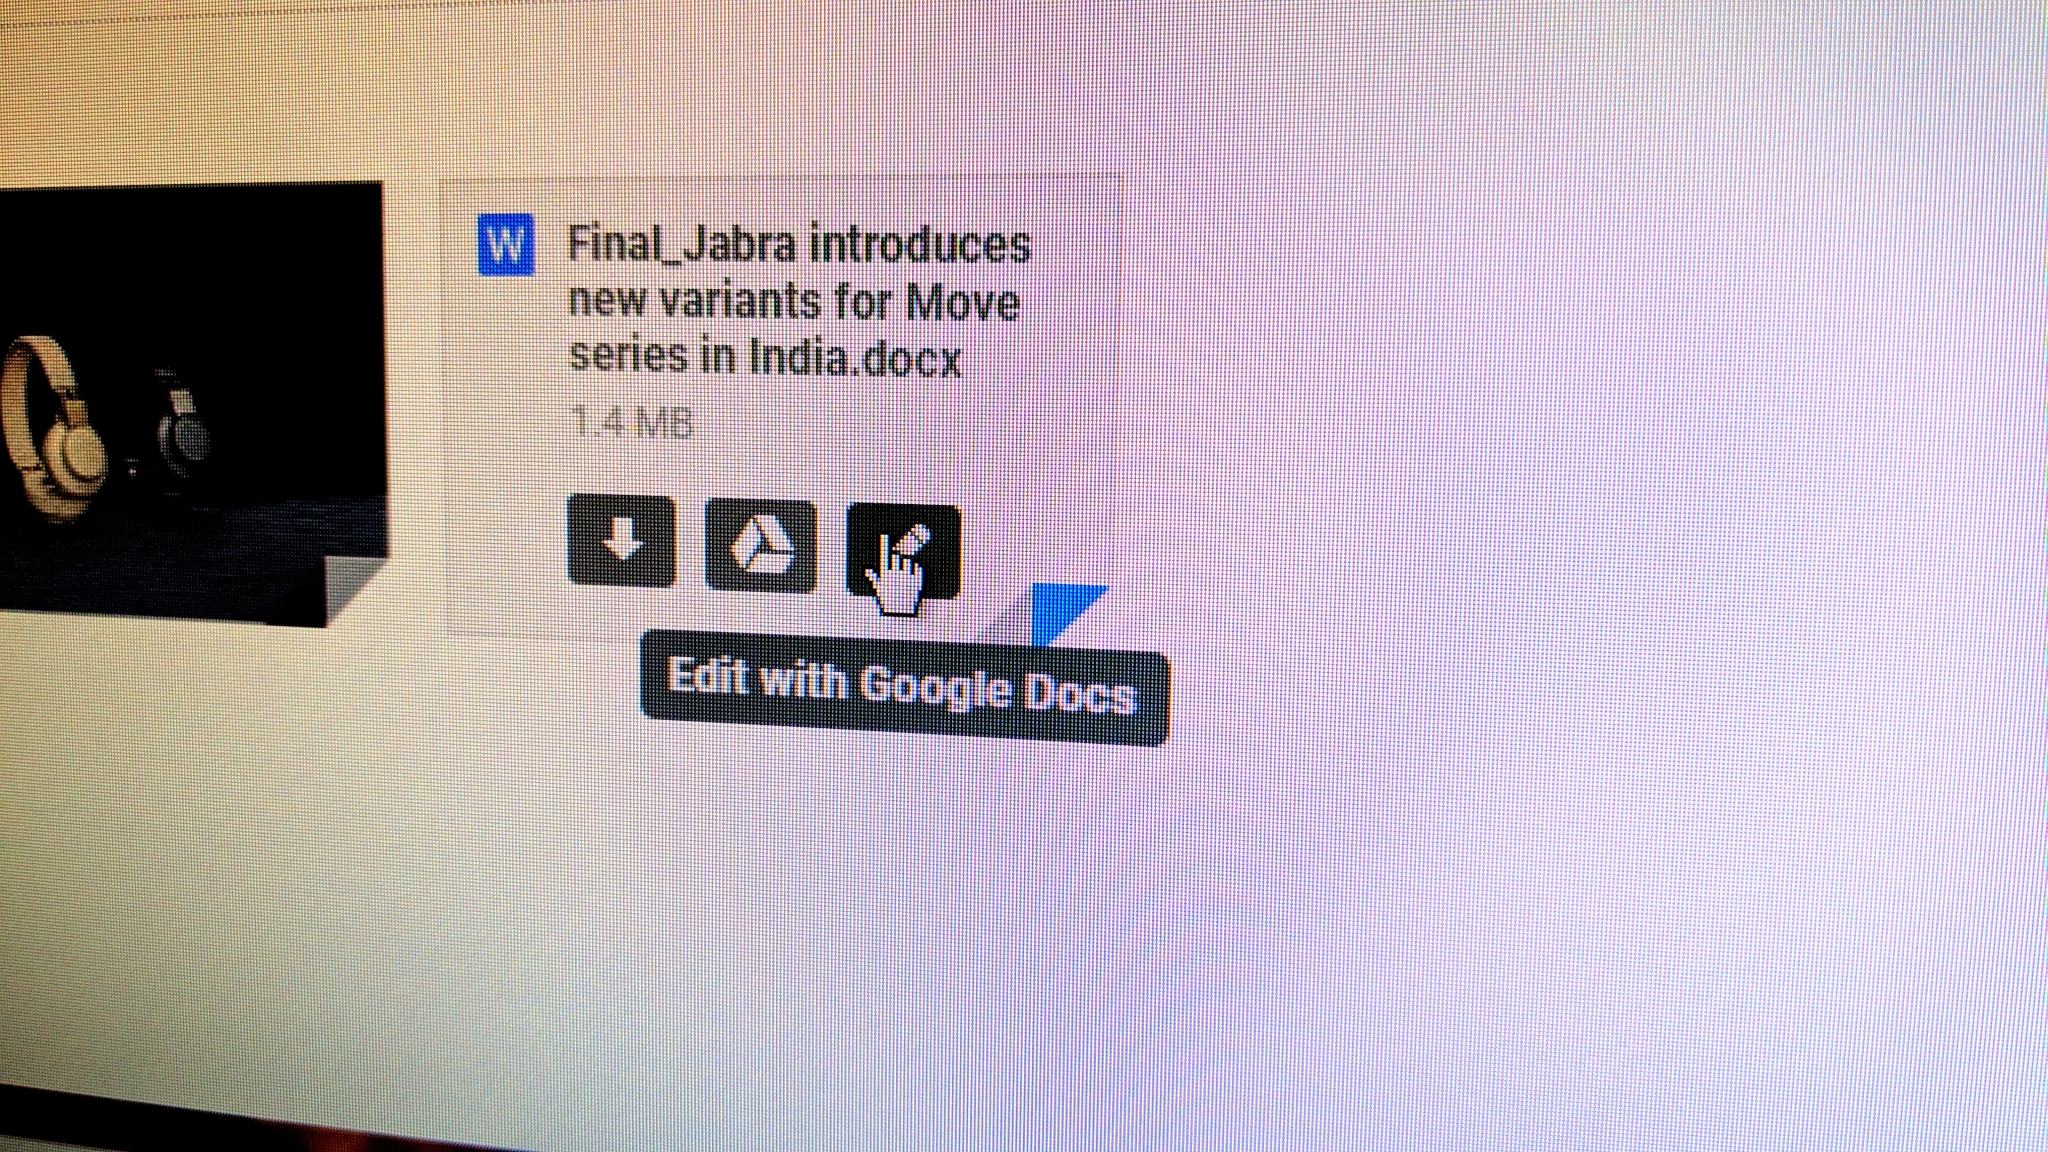 Microsoft Office Files Can Now be Edited Online via Google Docs